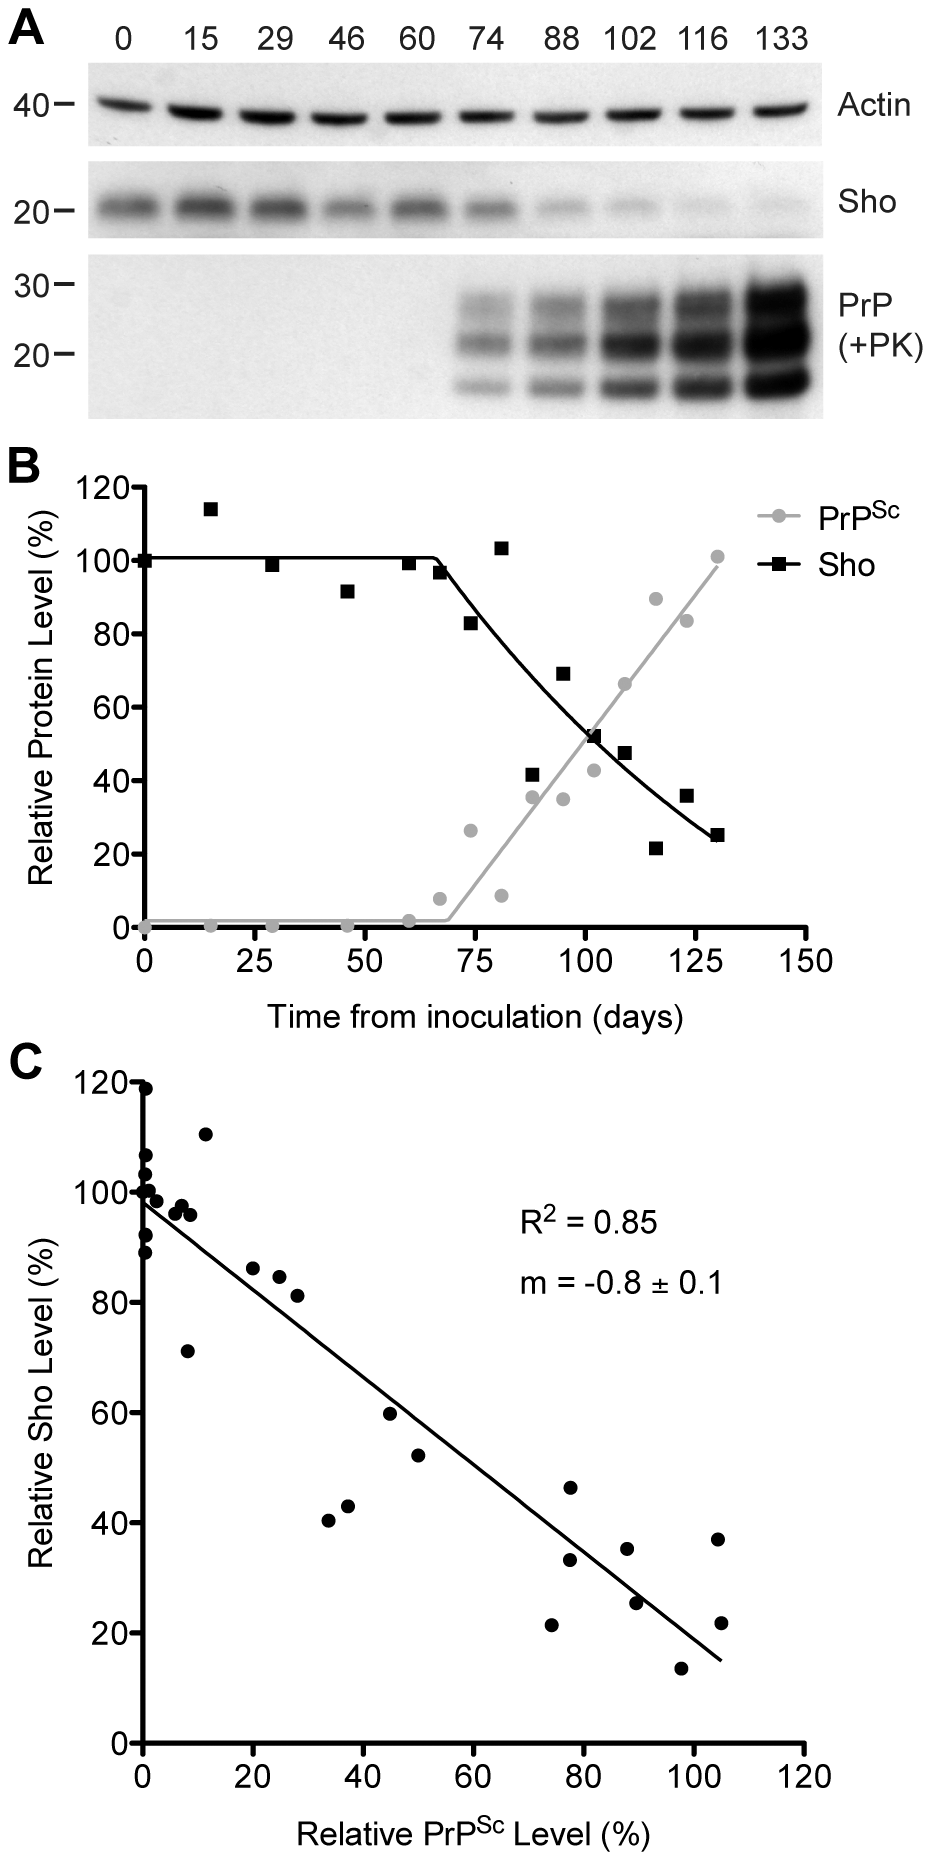 Inverse relationship between Sho and PrP<sup>Sc</sup> levels during prion disease in mice.